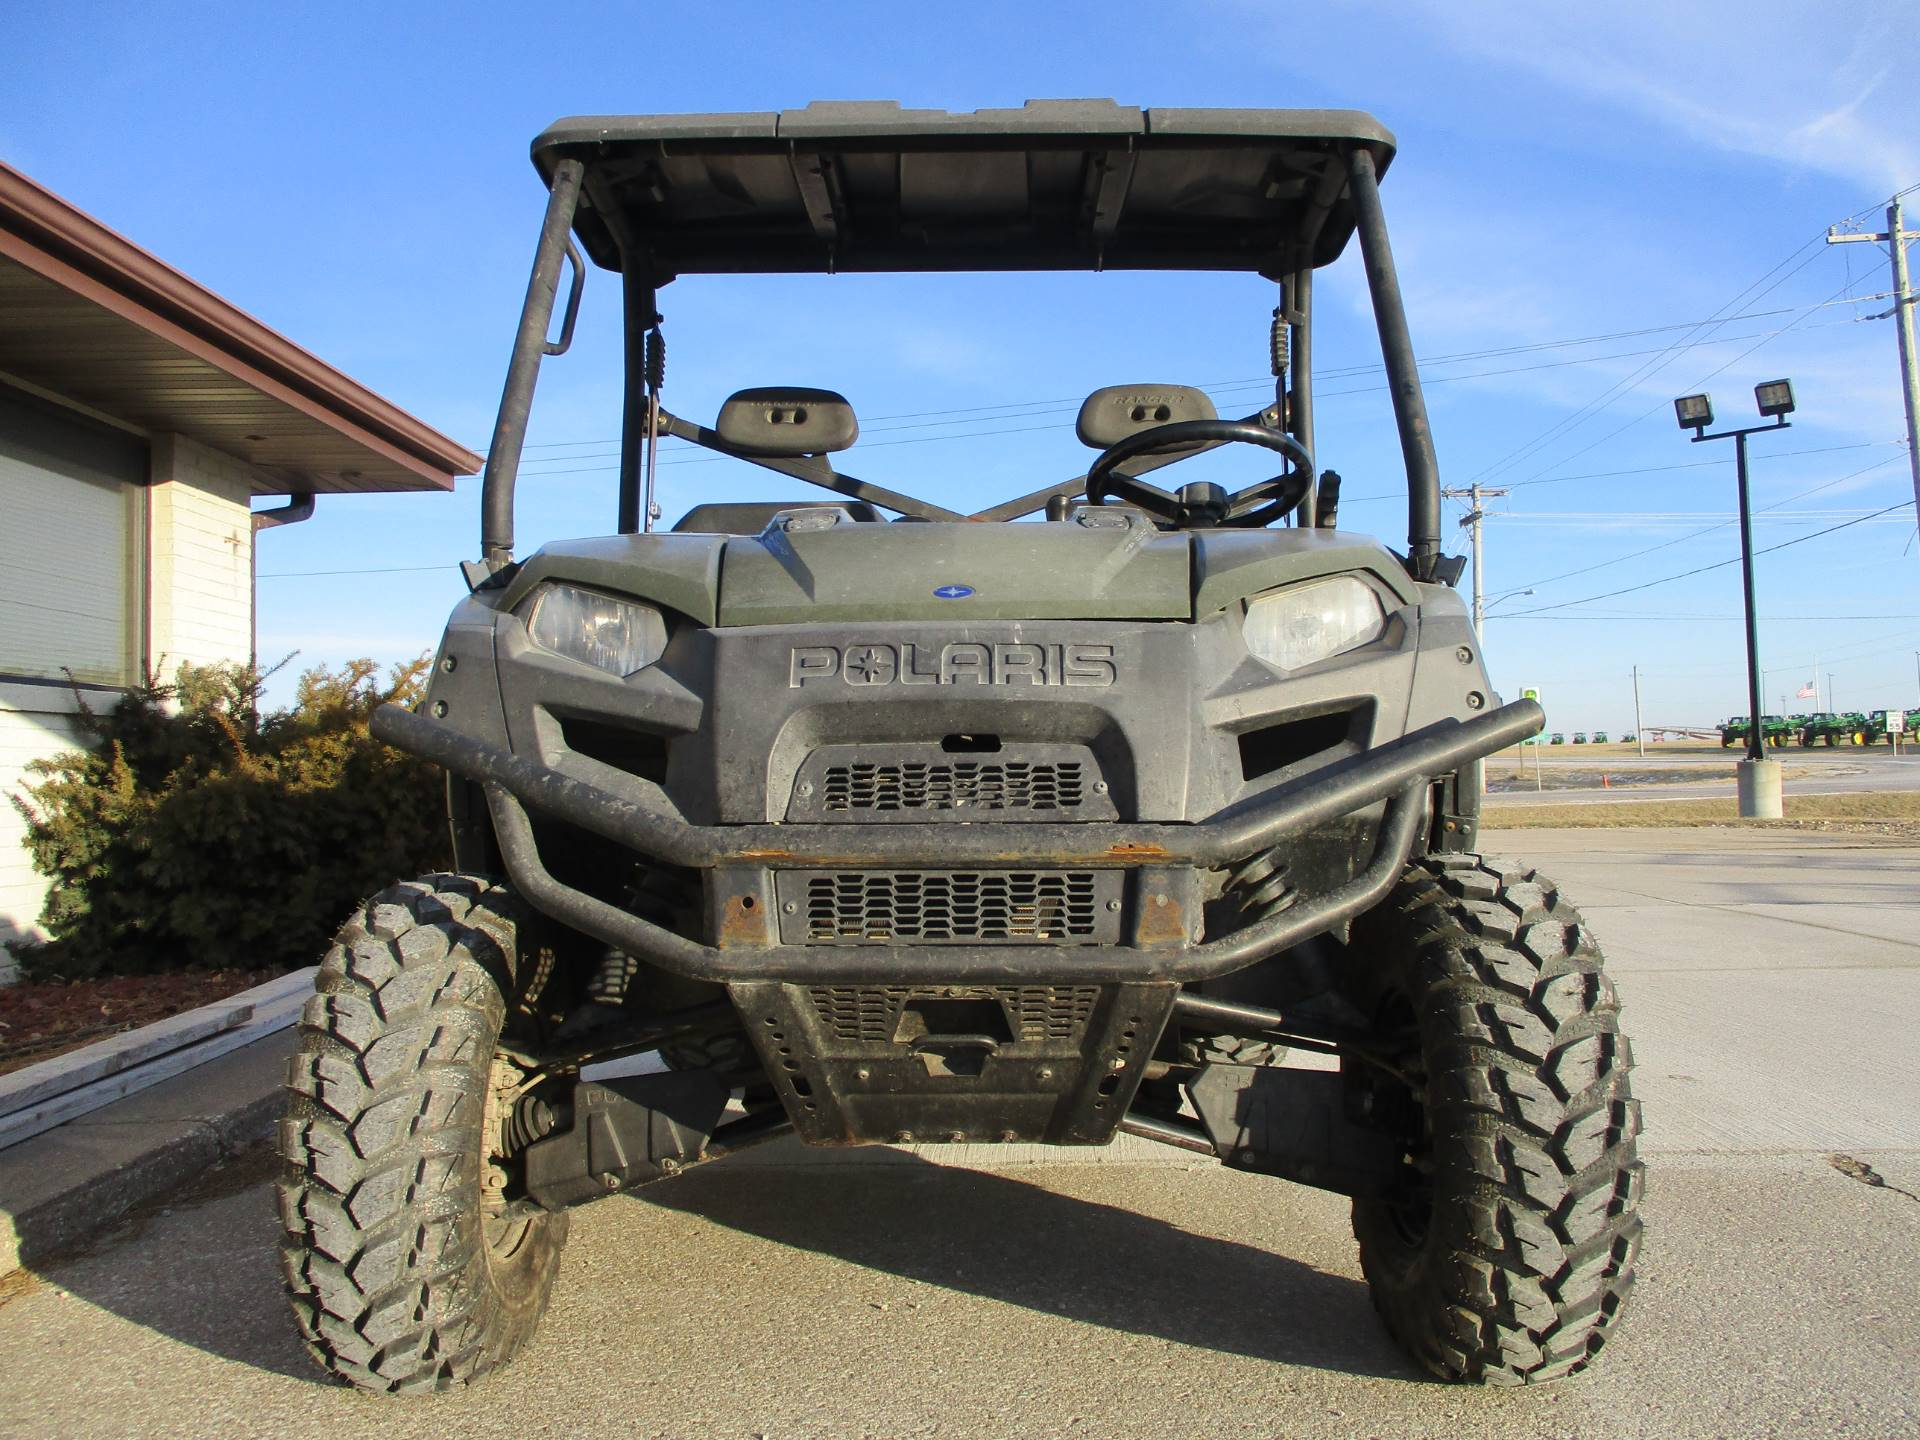 2011 Polaris Ranger XP® 800 in Winterset, Iowa - Photo 7